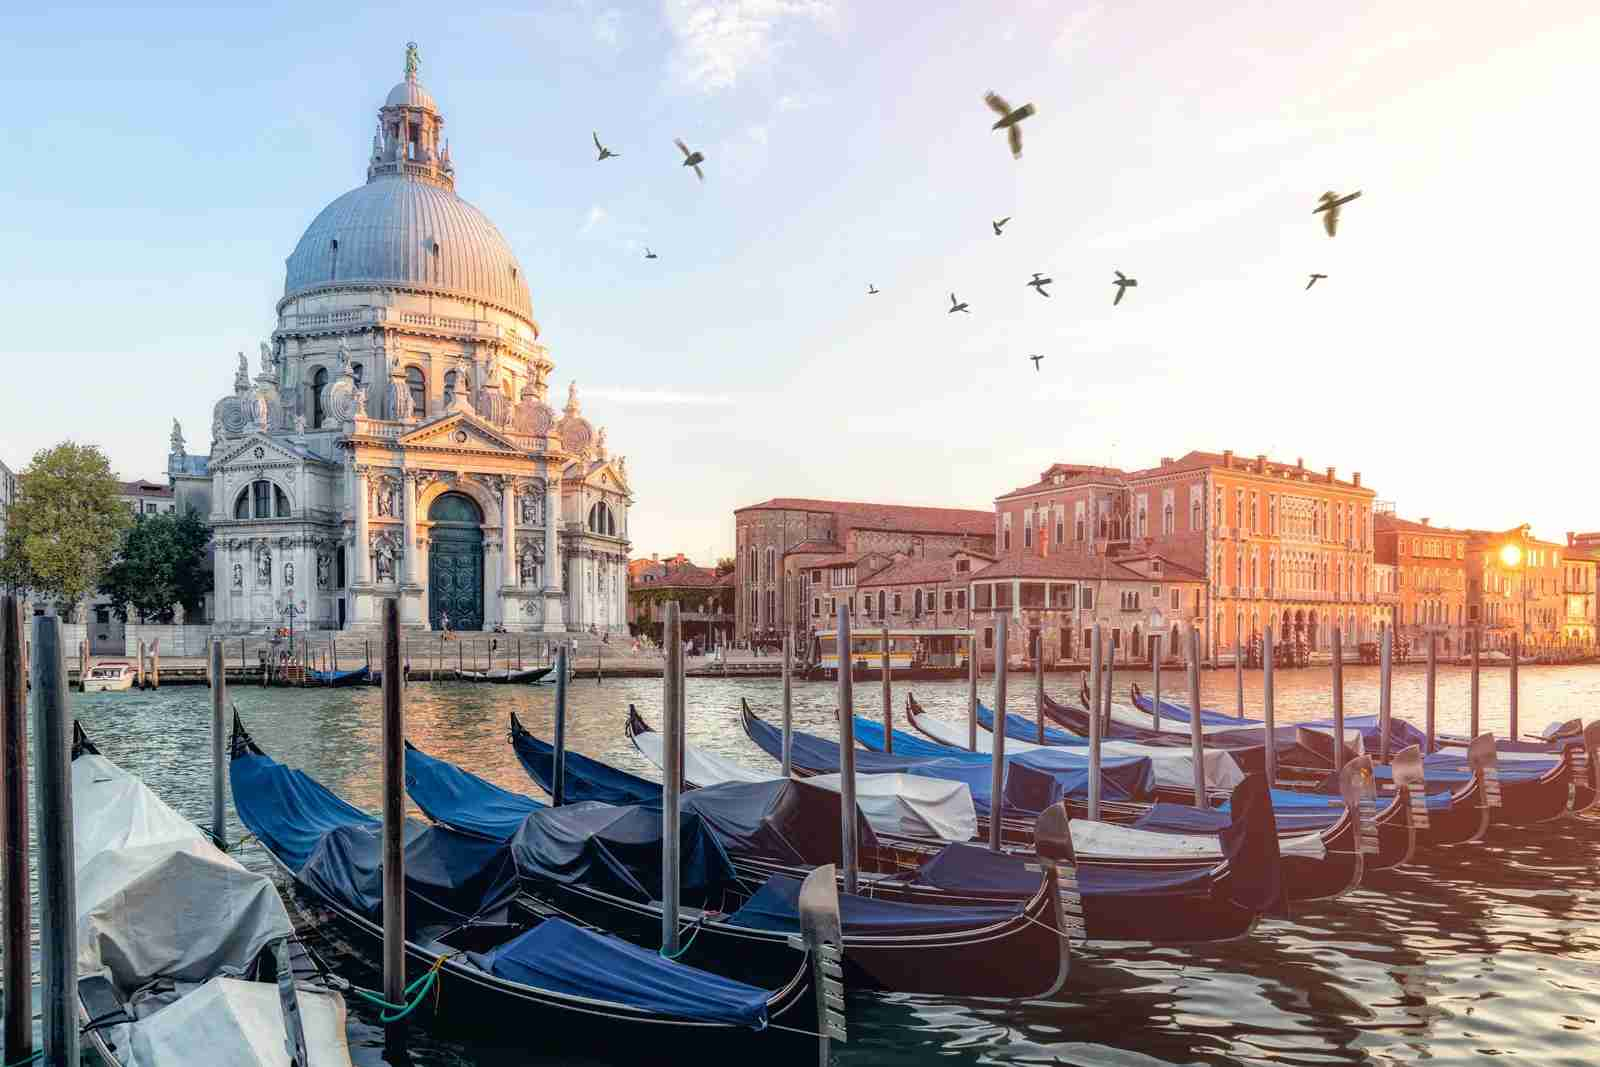 Venice, Italy. (Photo by JaCZhou-2015/Getty Images)